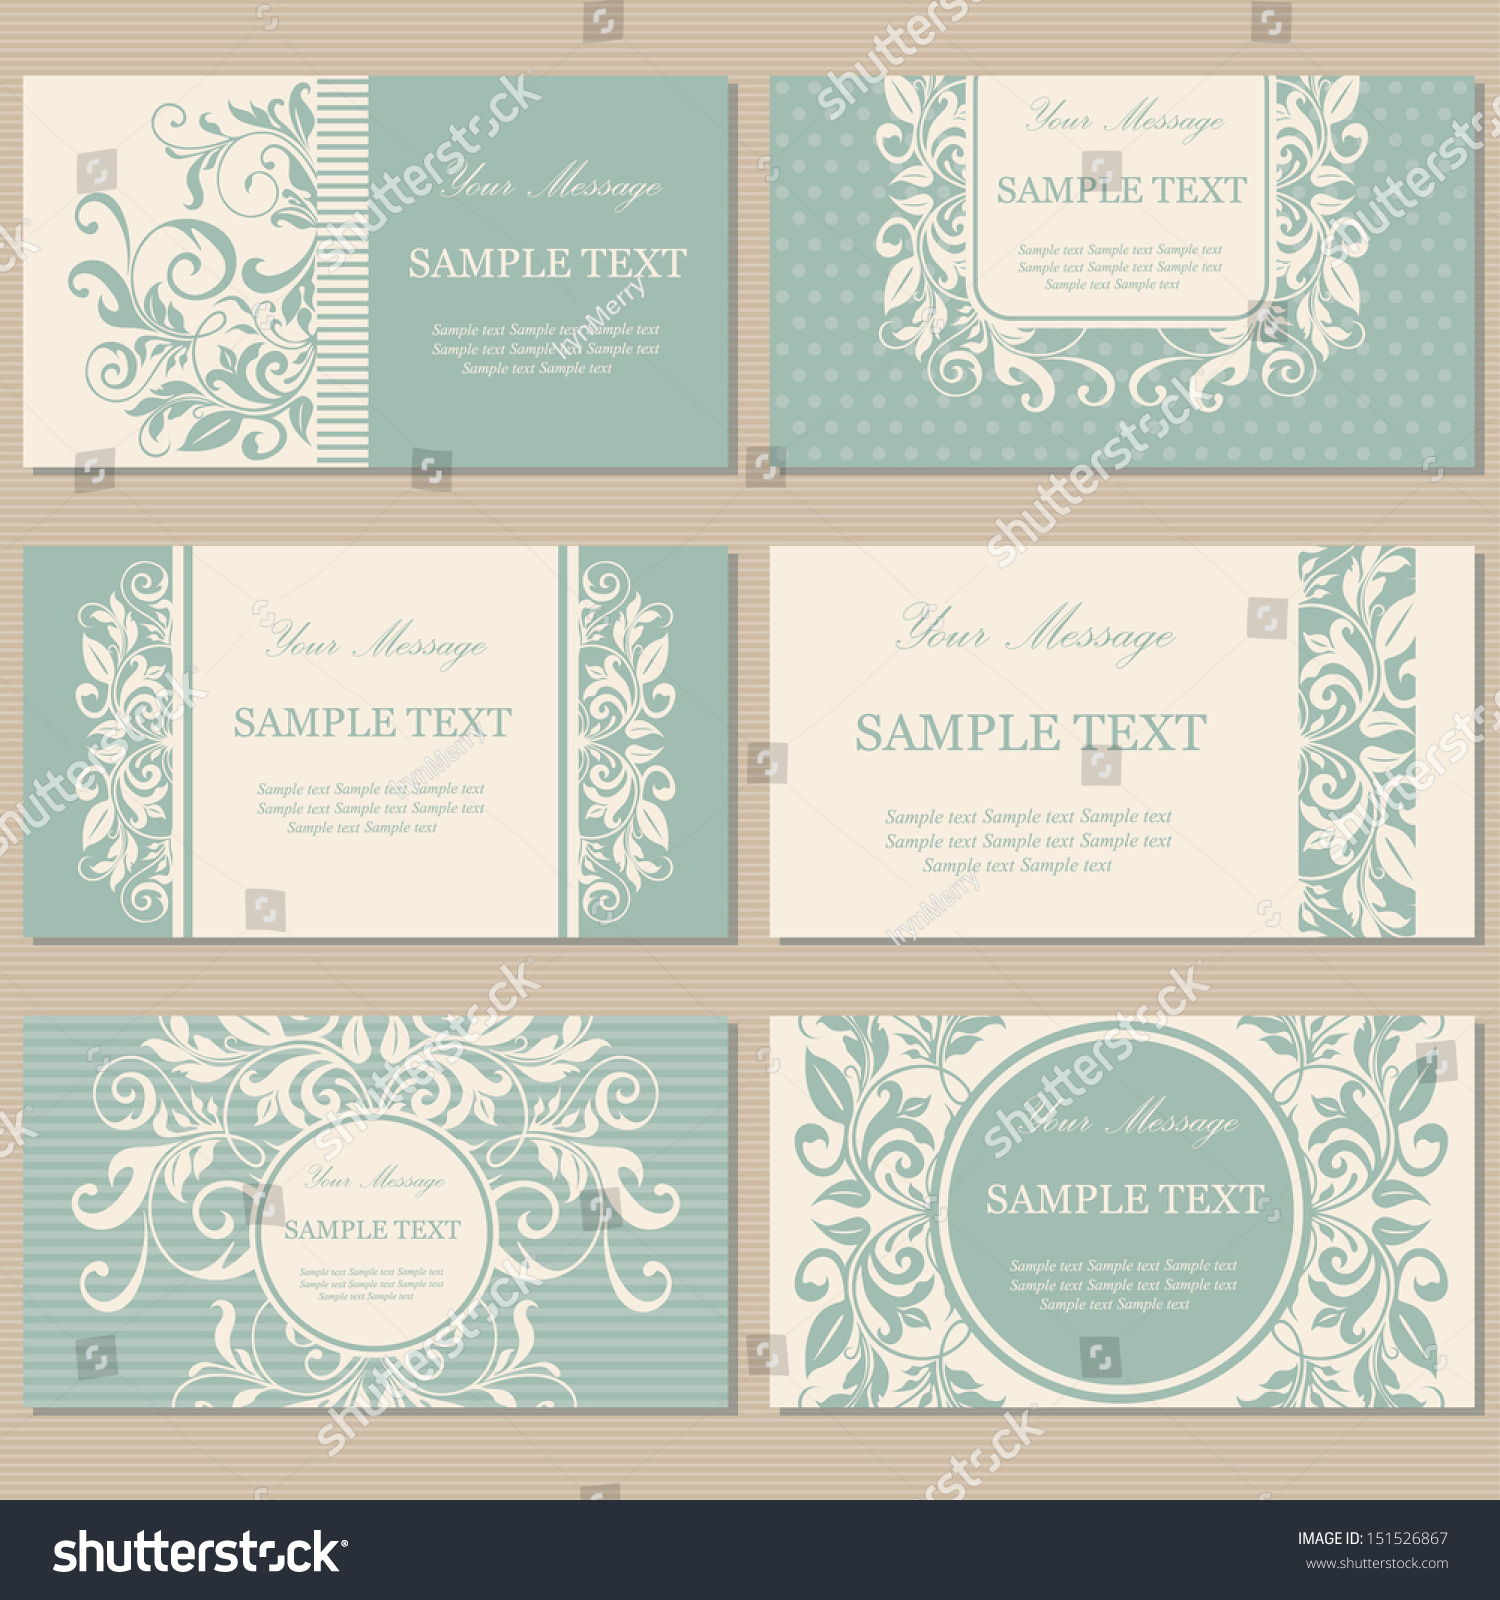 Set Six Floral Vintage Business Cards Stock Vector 151526867 ...